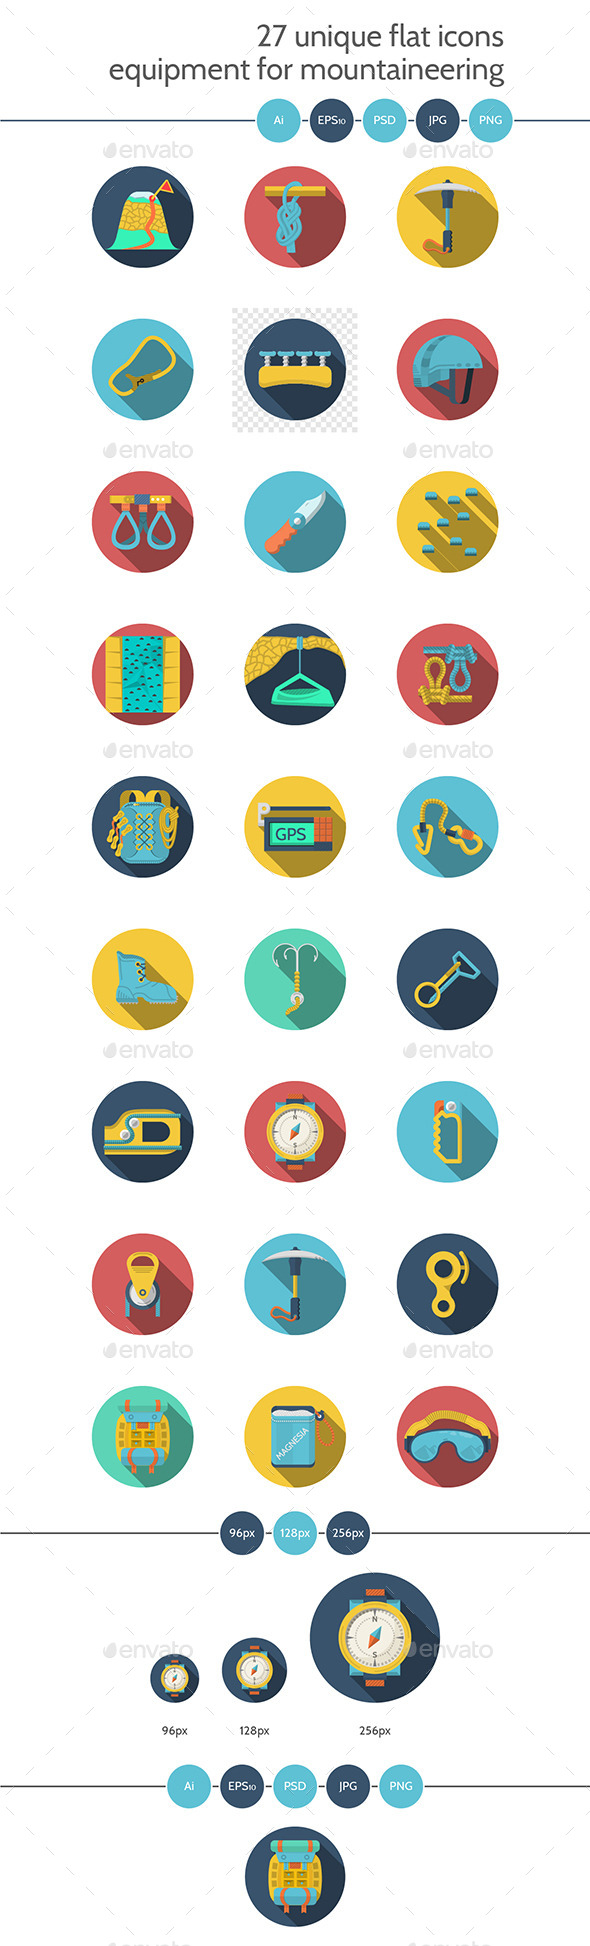 Flat Icons for Climbing Equipment - Icons